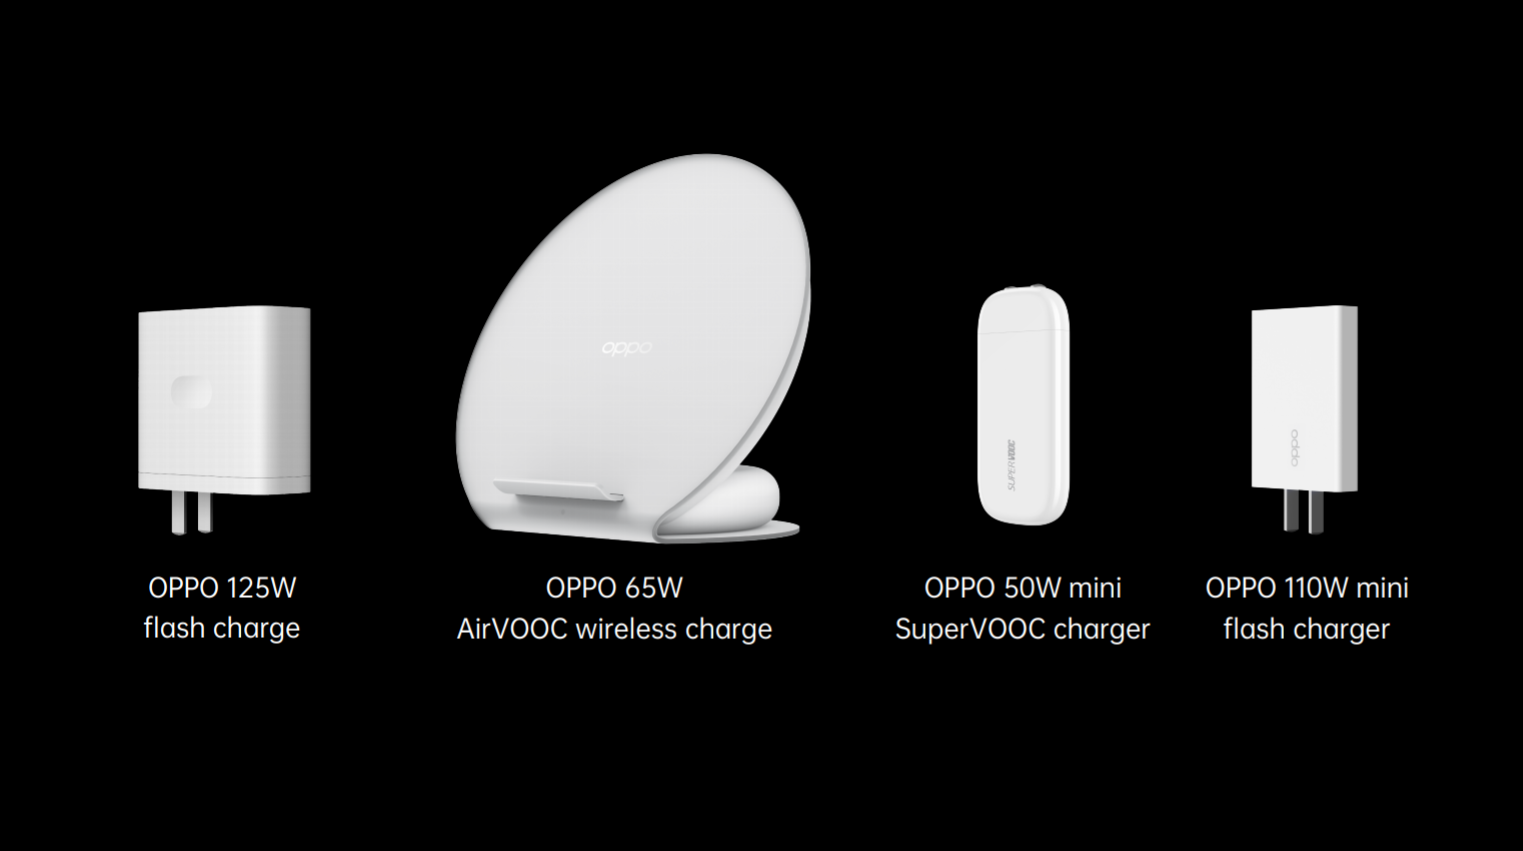 OPPO 125W falsh charge